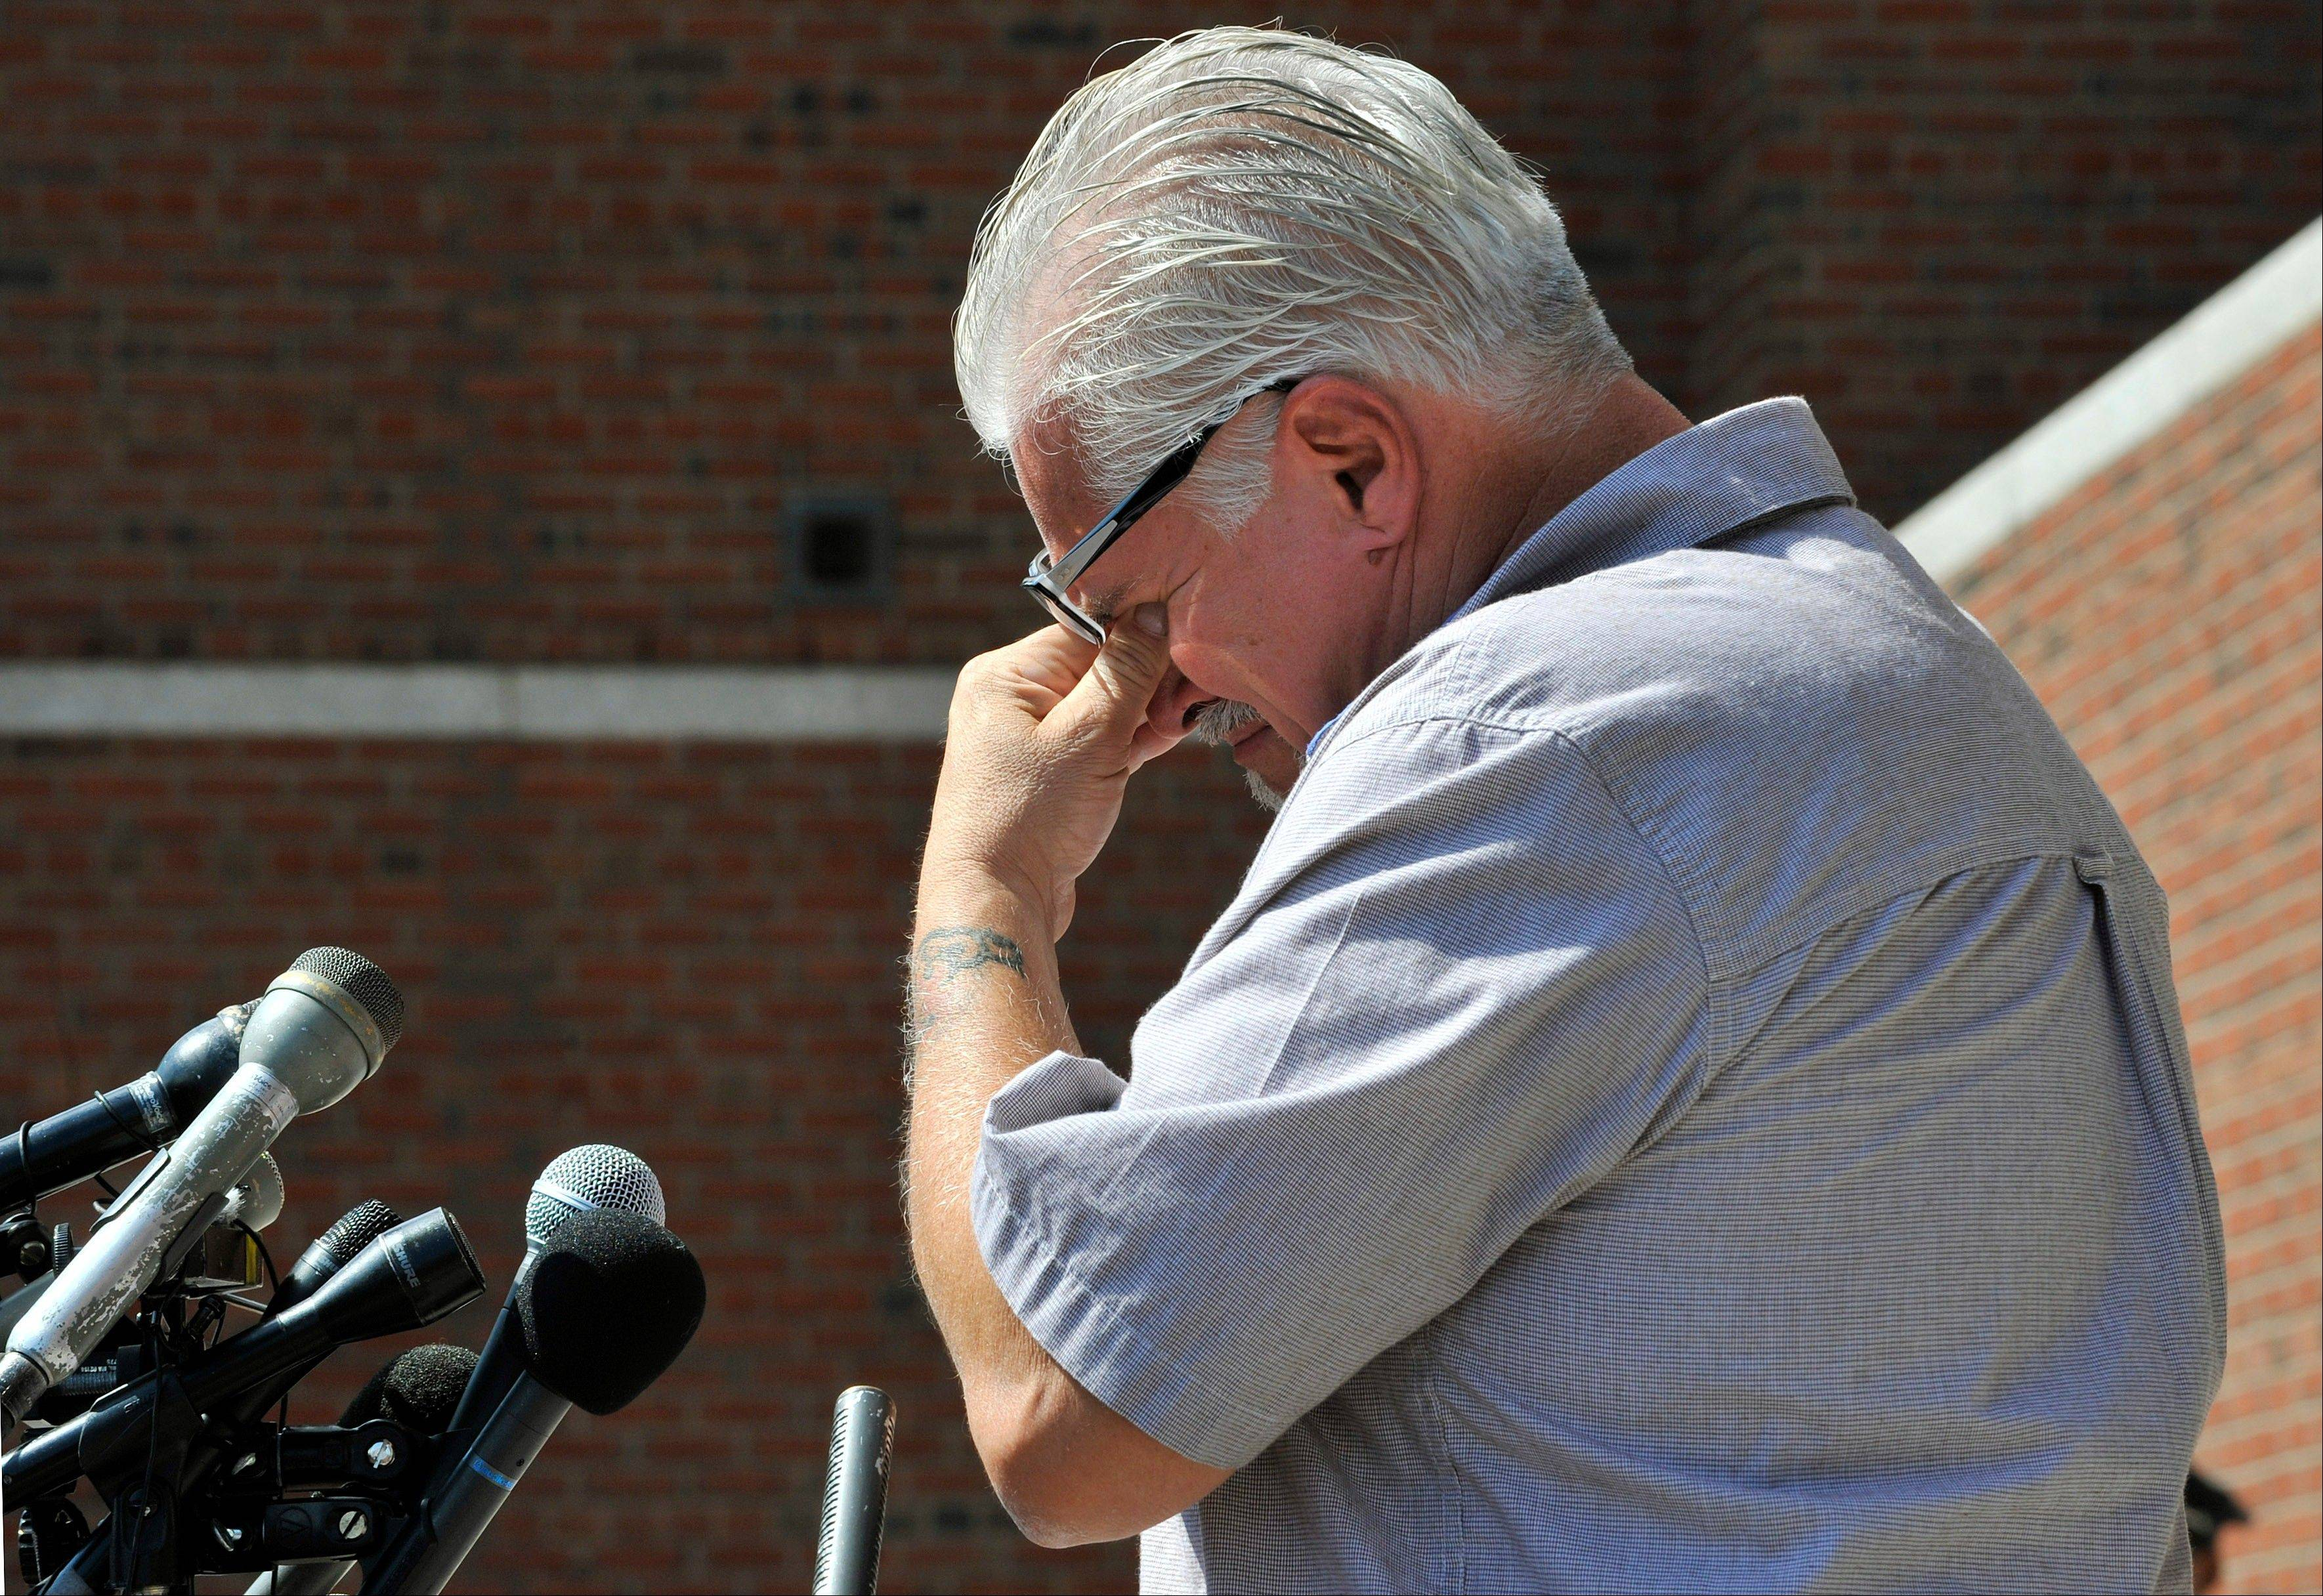 Steven Davis, brother of Debra Davis, wipes his eyes while speaking outside federal court where a jury found James �Whitey� Bulger guilty on several counts of murder, racketeering and conspiracy Monday, Aug. 12, 2013 in Boston. Jurors could not agree whether Bulger was involved in Debra Davis� killing.